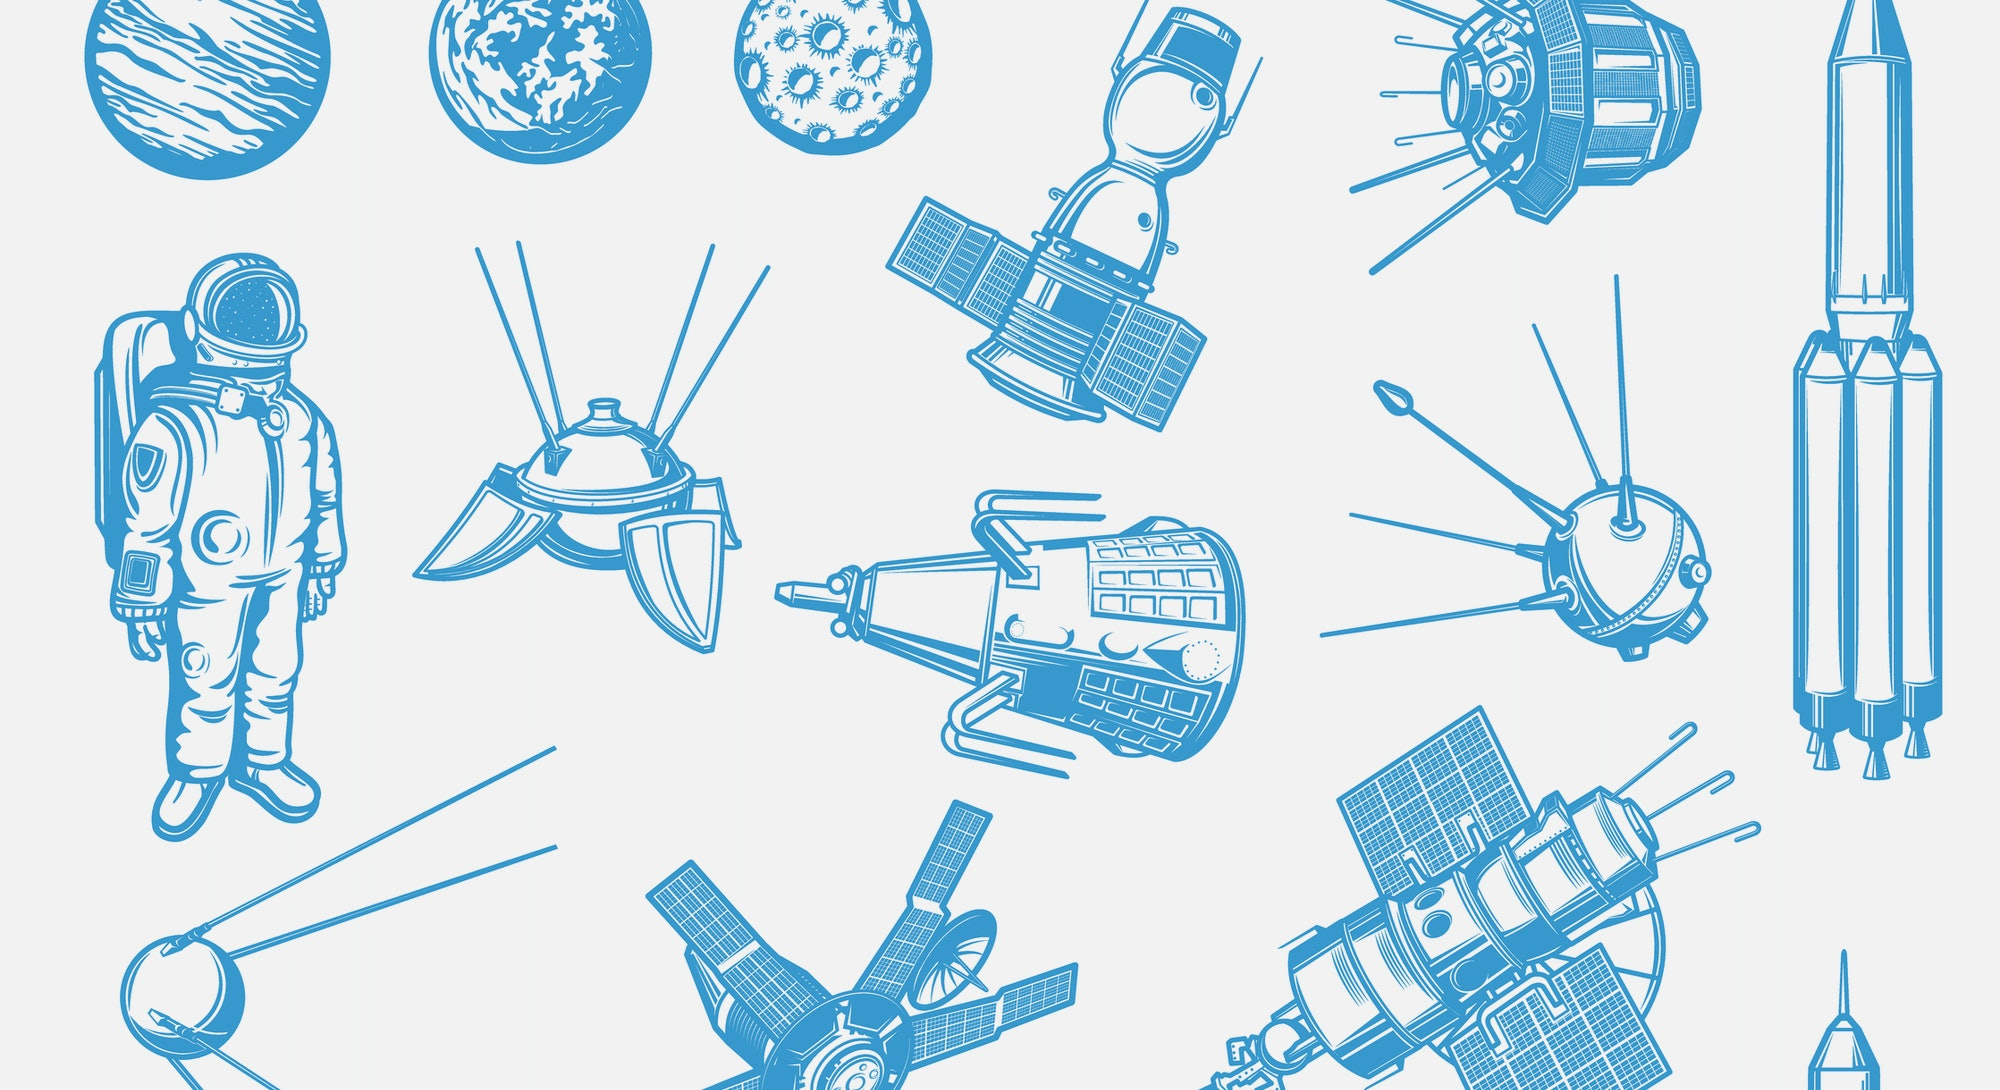 Space exploration, galaxy research spacecraft and satellites icons set. Astronaut in spacesuit, arti...